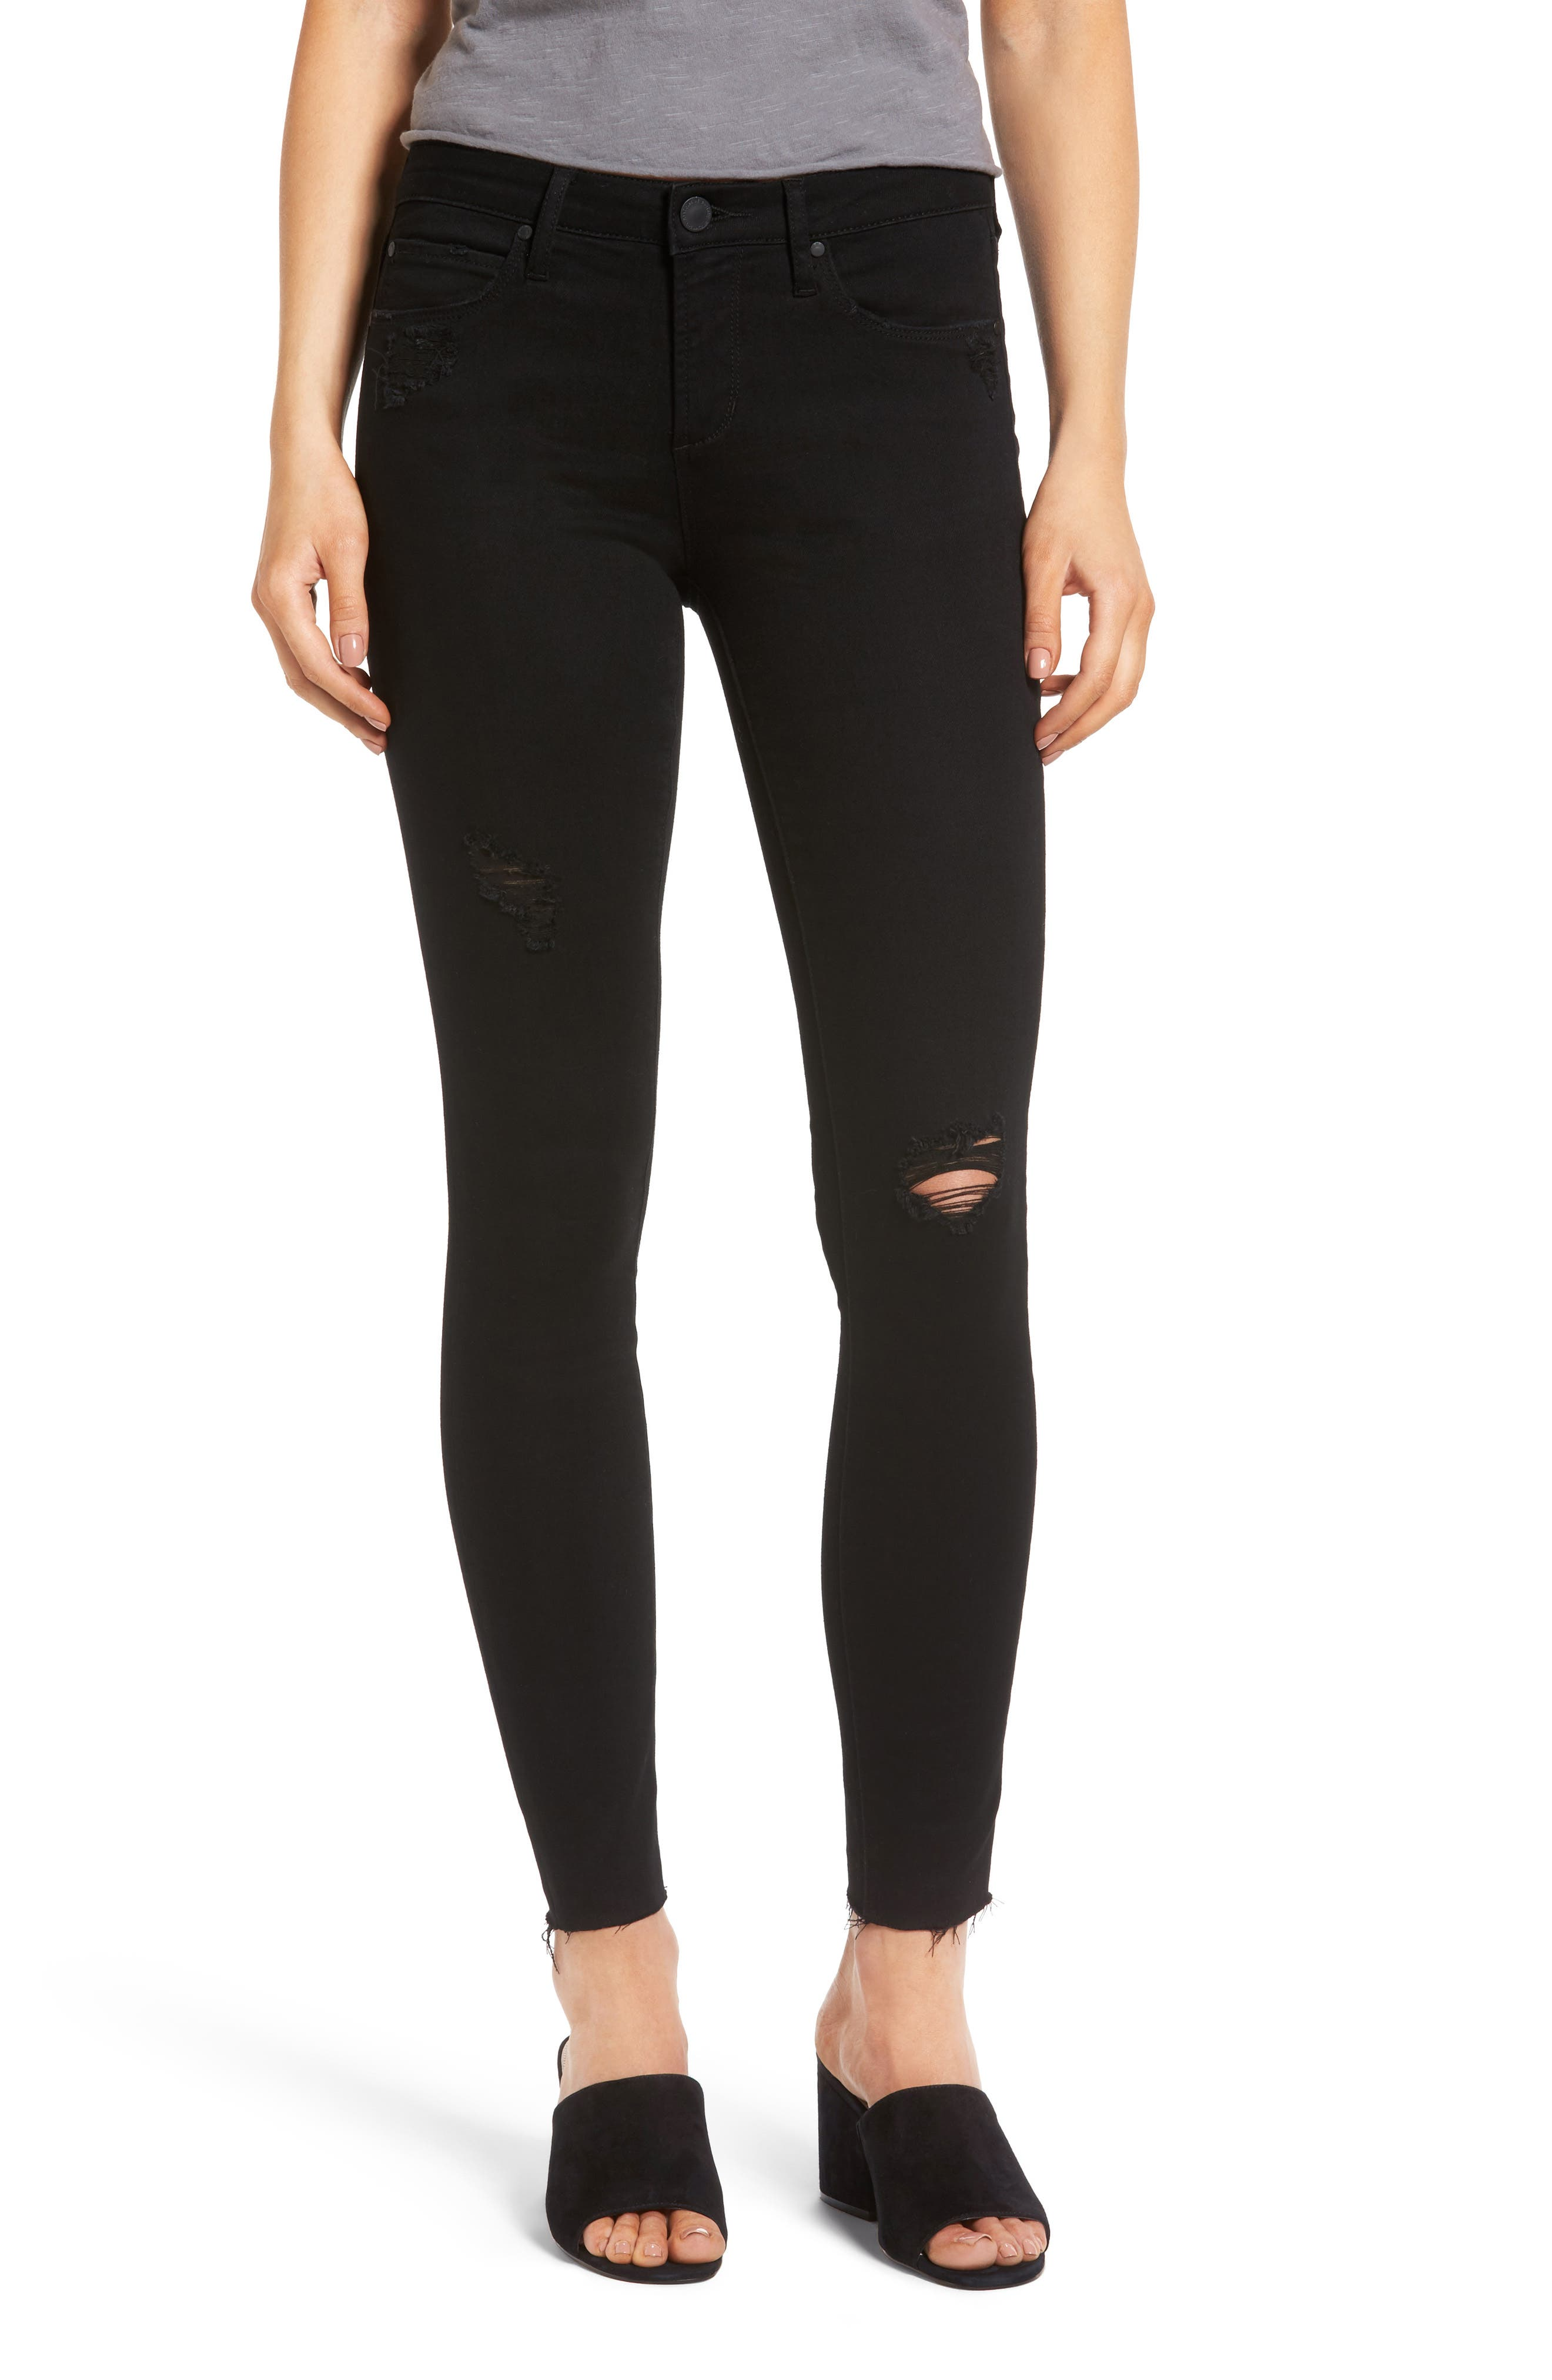 Alternate Image 1 Selected - Articles of Society Sarah Skinny Jeans (Fenton)